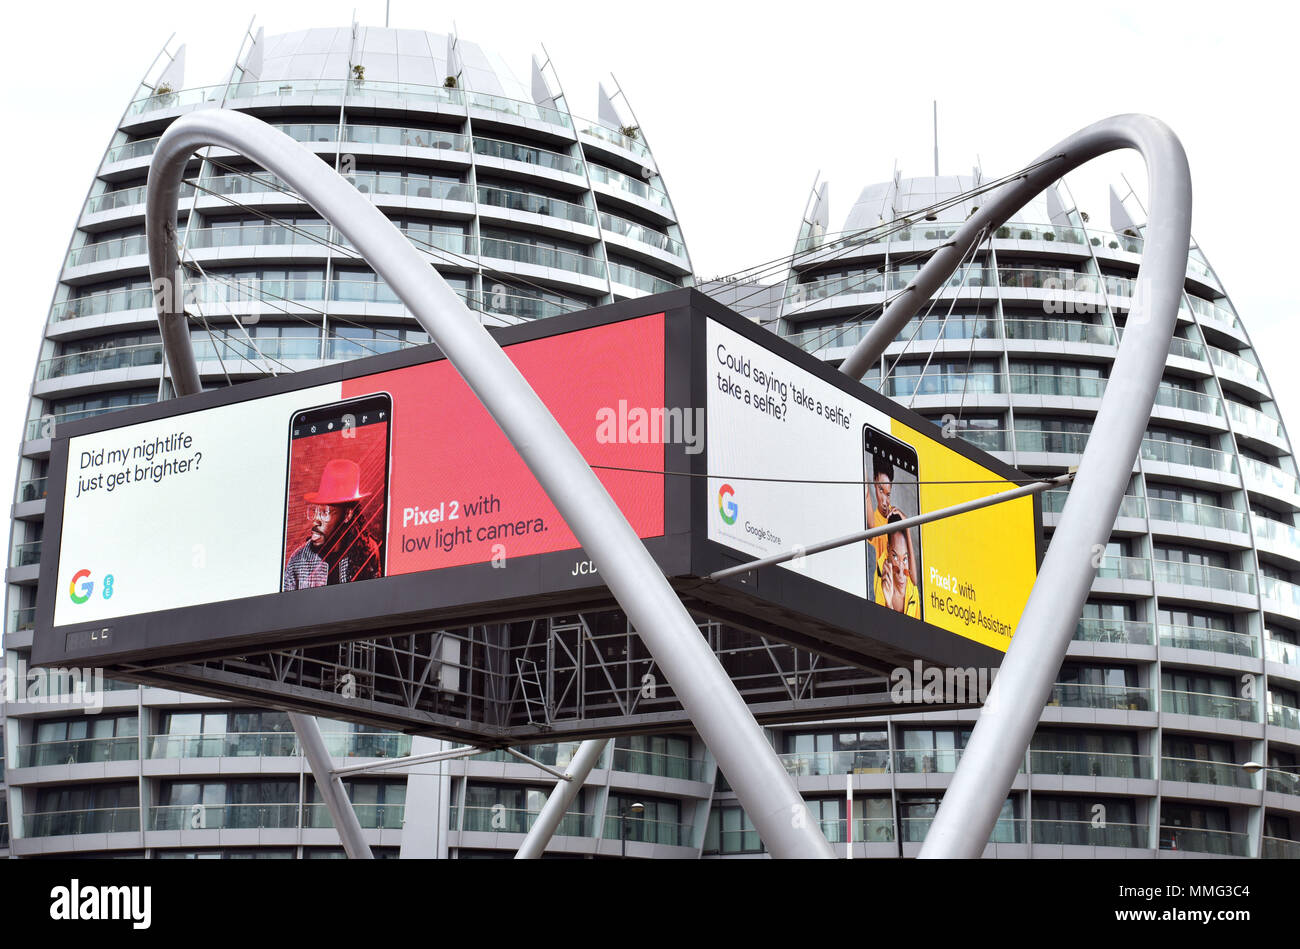 Digital advertising hoardings promoting Google Store and mobile phone EE Pixel 2 on the Old Street Roundabout in East London, UK. - Stock Image